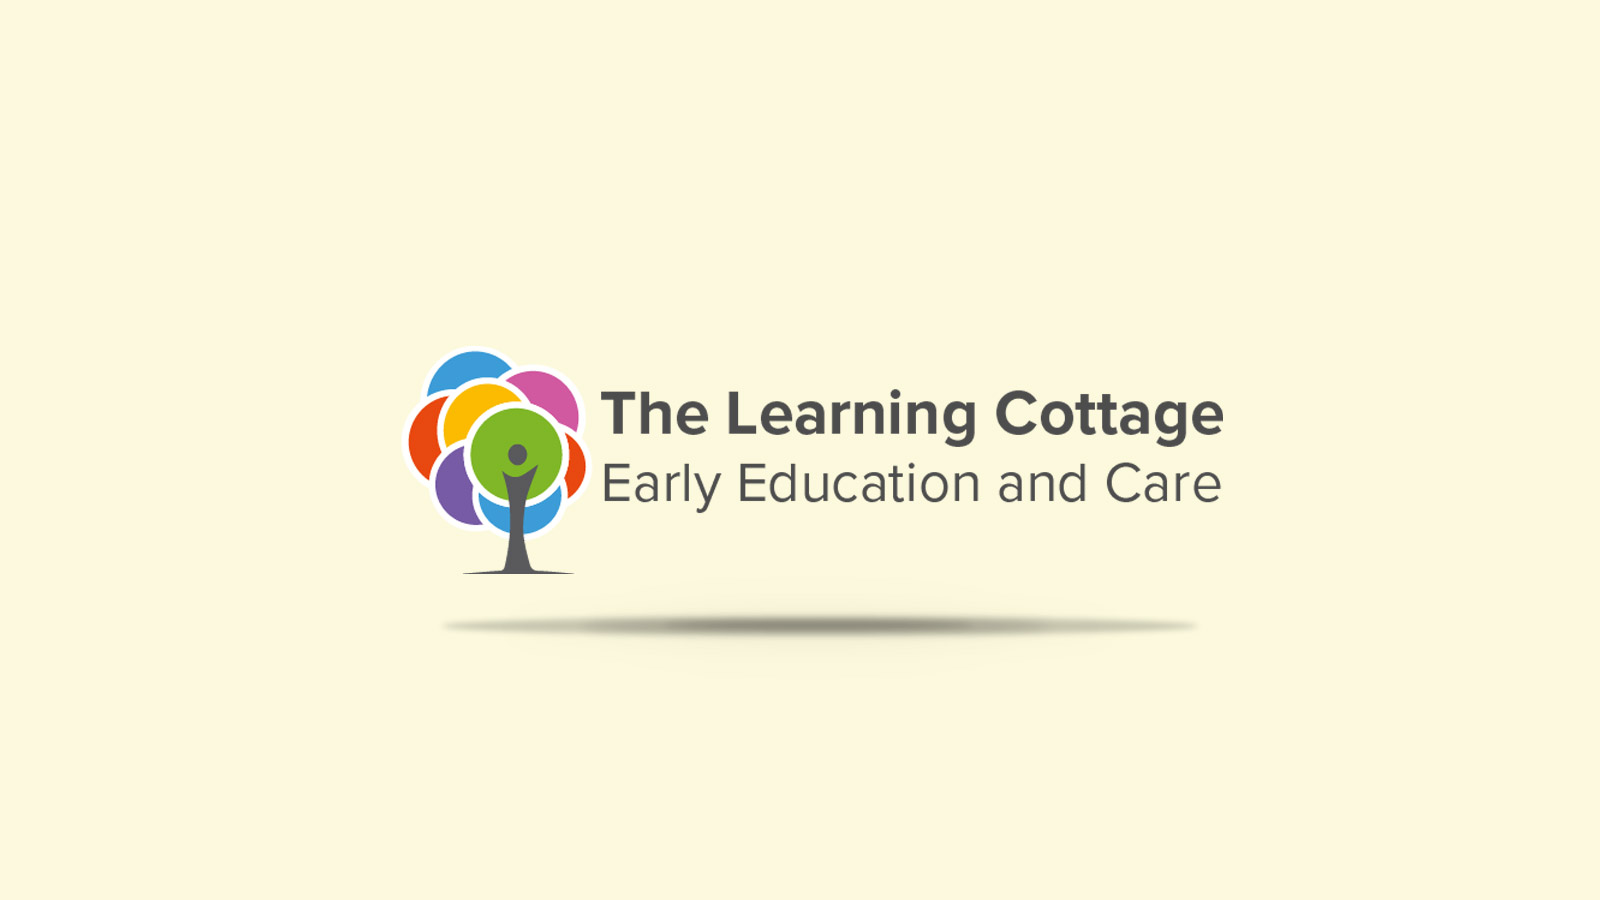 The Learning Cottage Client